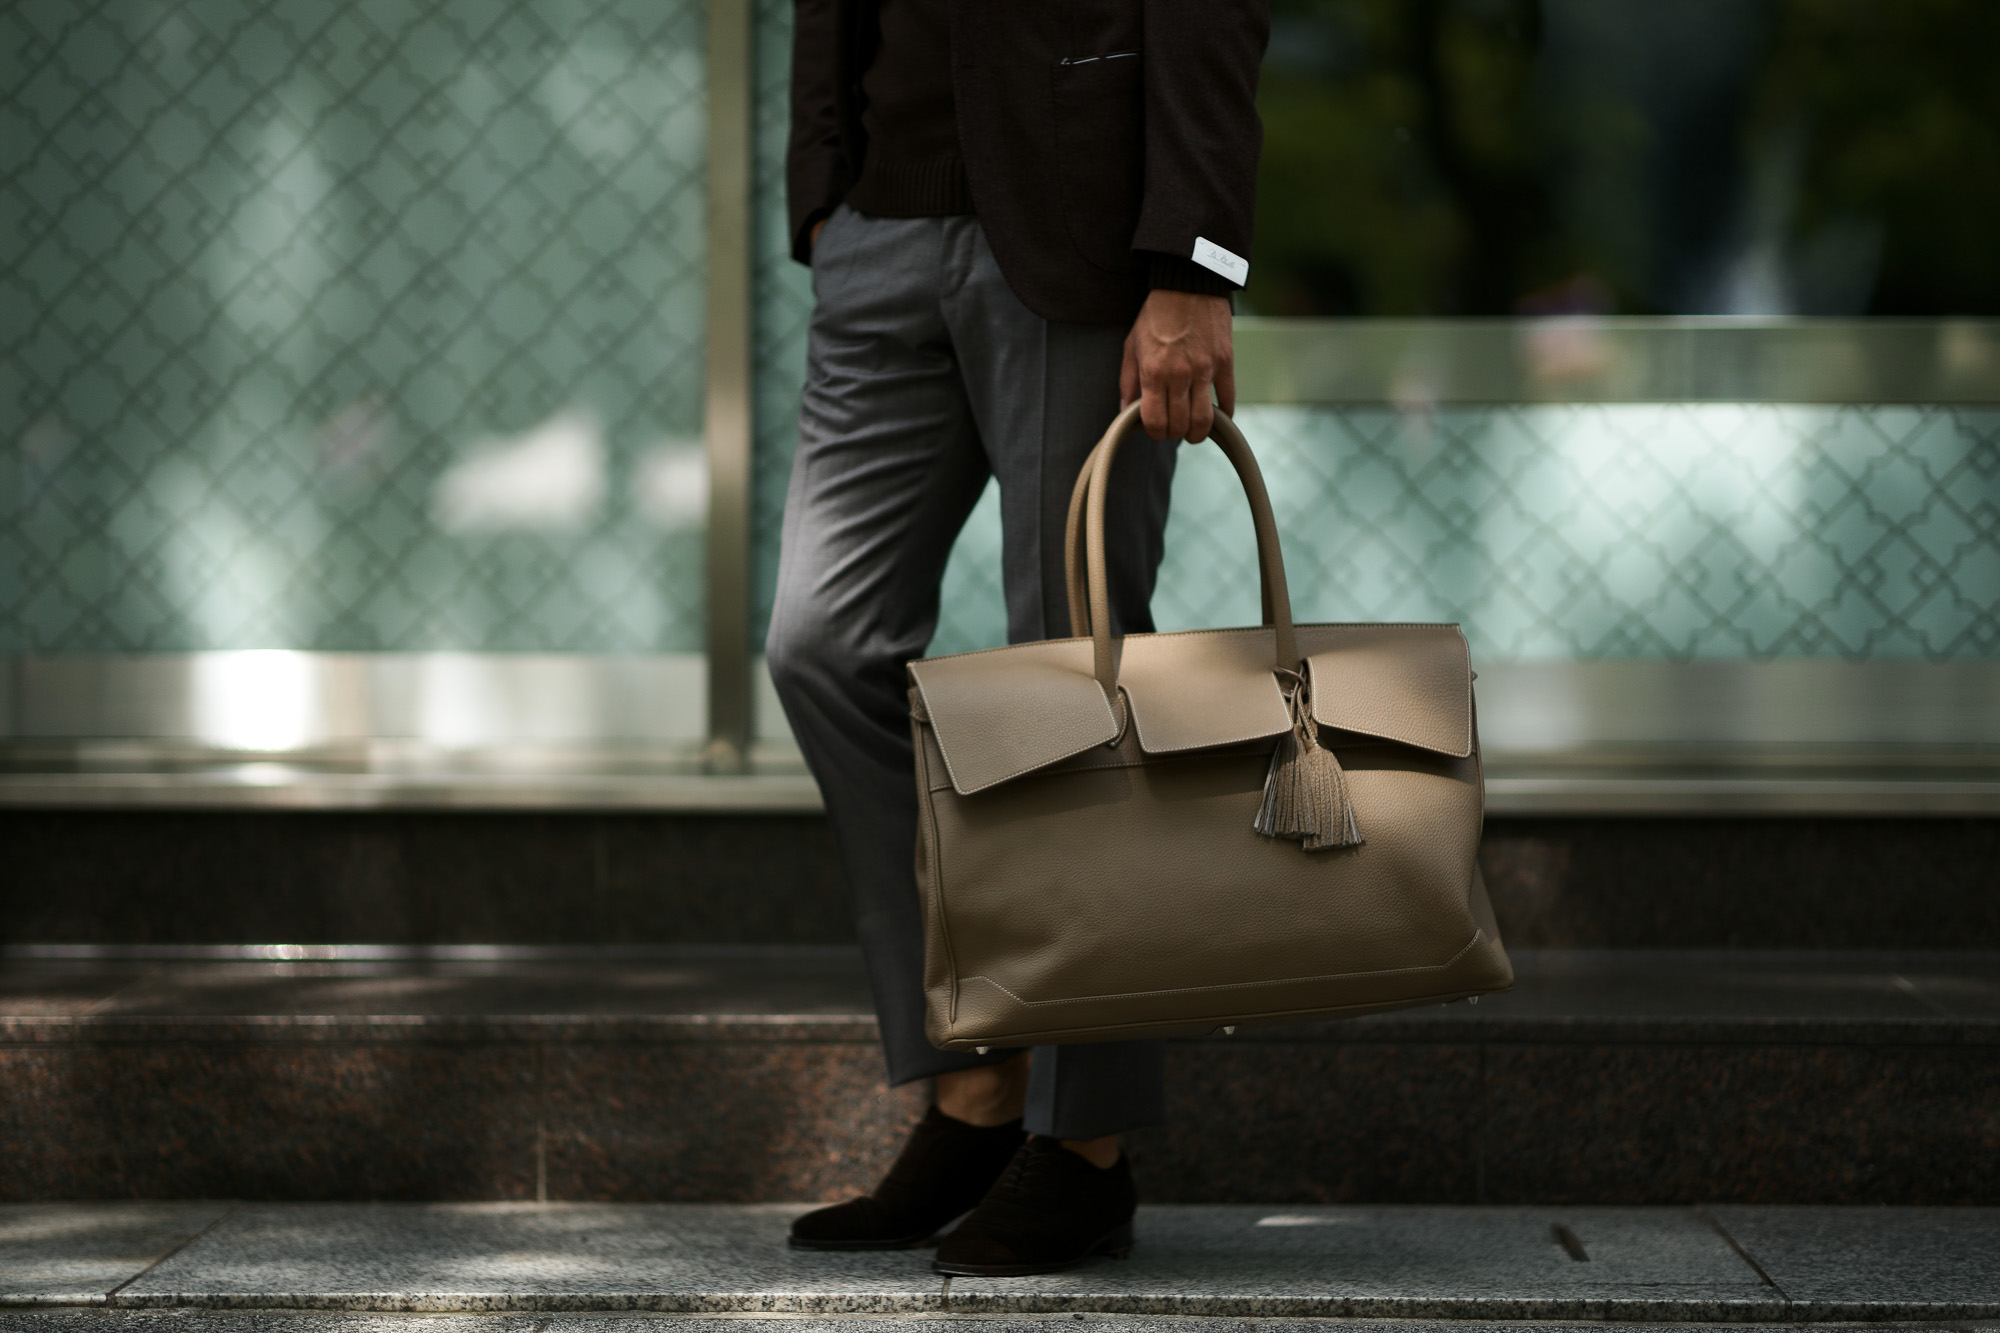 ACATE(アカーテ)OSTRO(オストロ) Montblanc leather(モンブランレザー) トートバック レザーバック TAUPE(トープ) MADE IN ITALY(イタリア製) 2019 秋冬新作 愛知 名古屋 altoediritto アルトエデリット